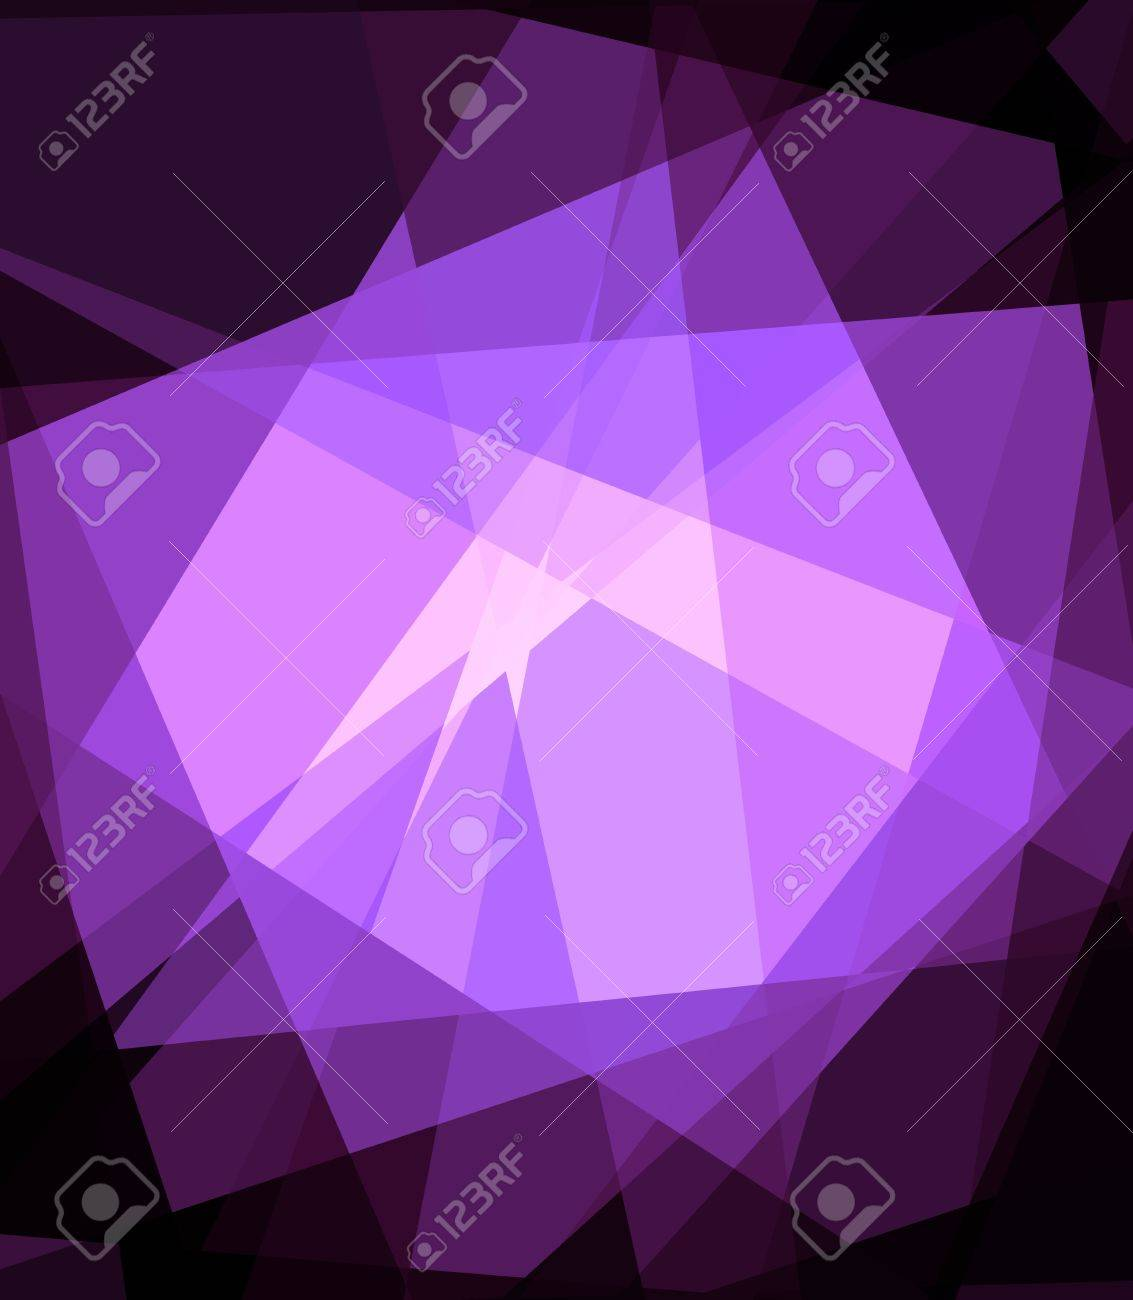 Purple Cubism Crystal Abstract over Black Background Stock Photo - 14859151